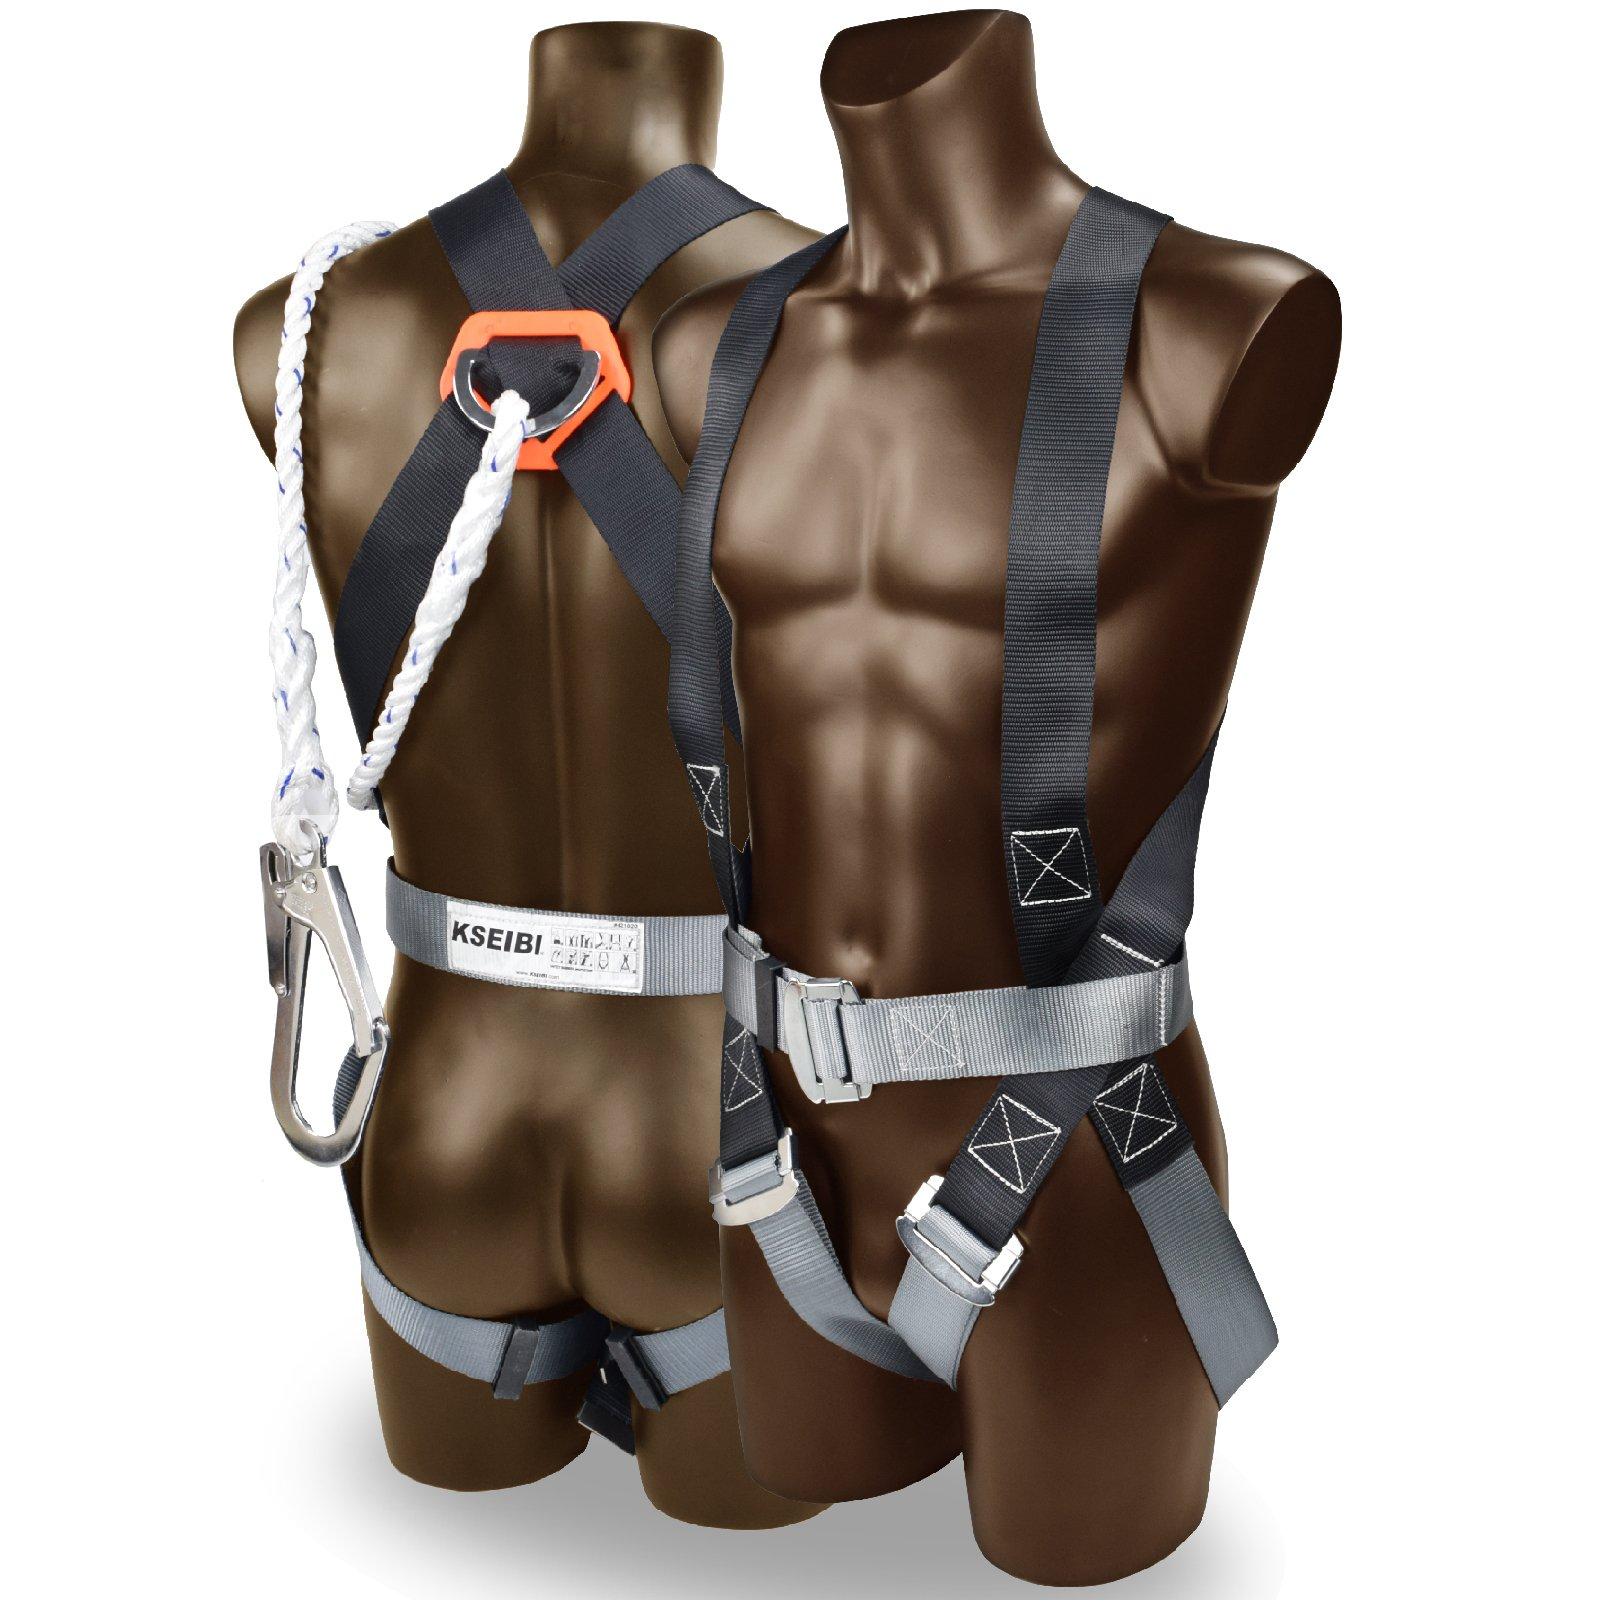 KSEIBI 421020 Safety Harness Fall Protection Kit, Construction Full Body System, with 6'' Lanyard and Bag Size -up to 42'' Waist by KSEIBI